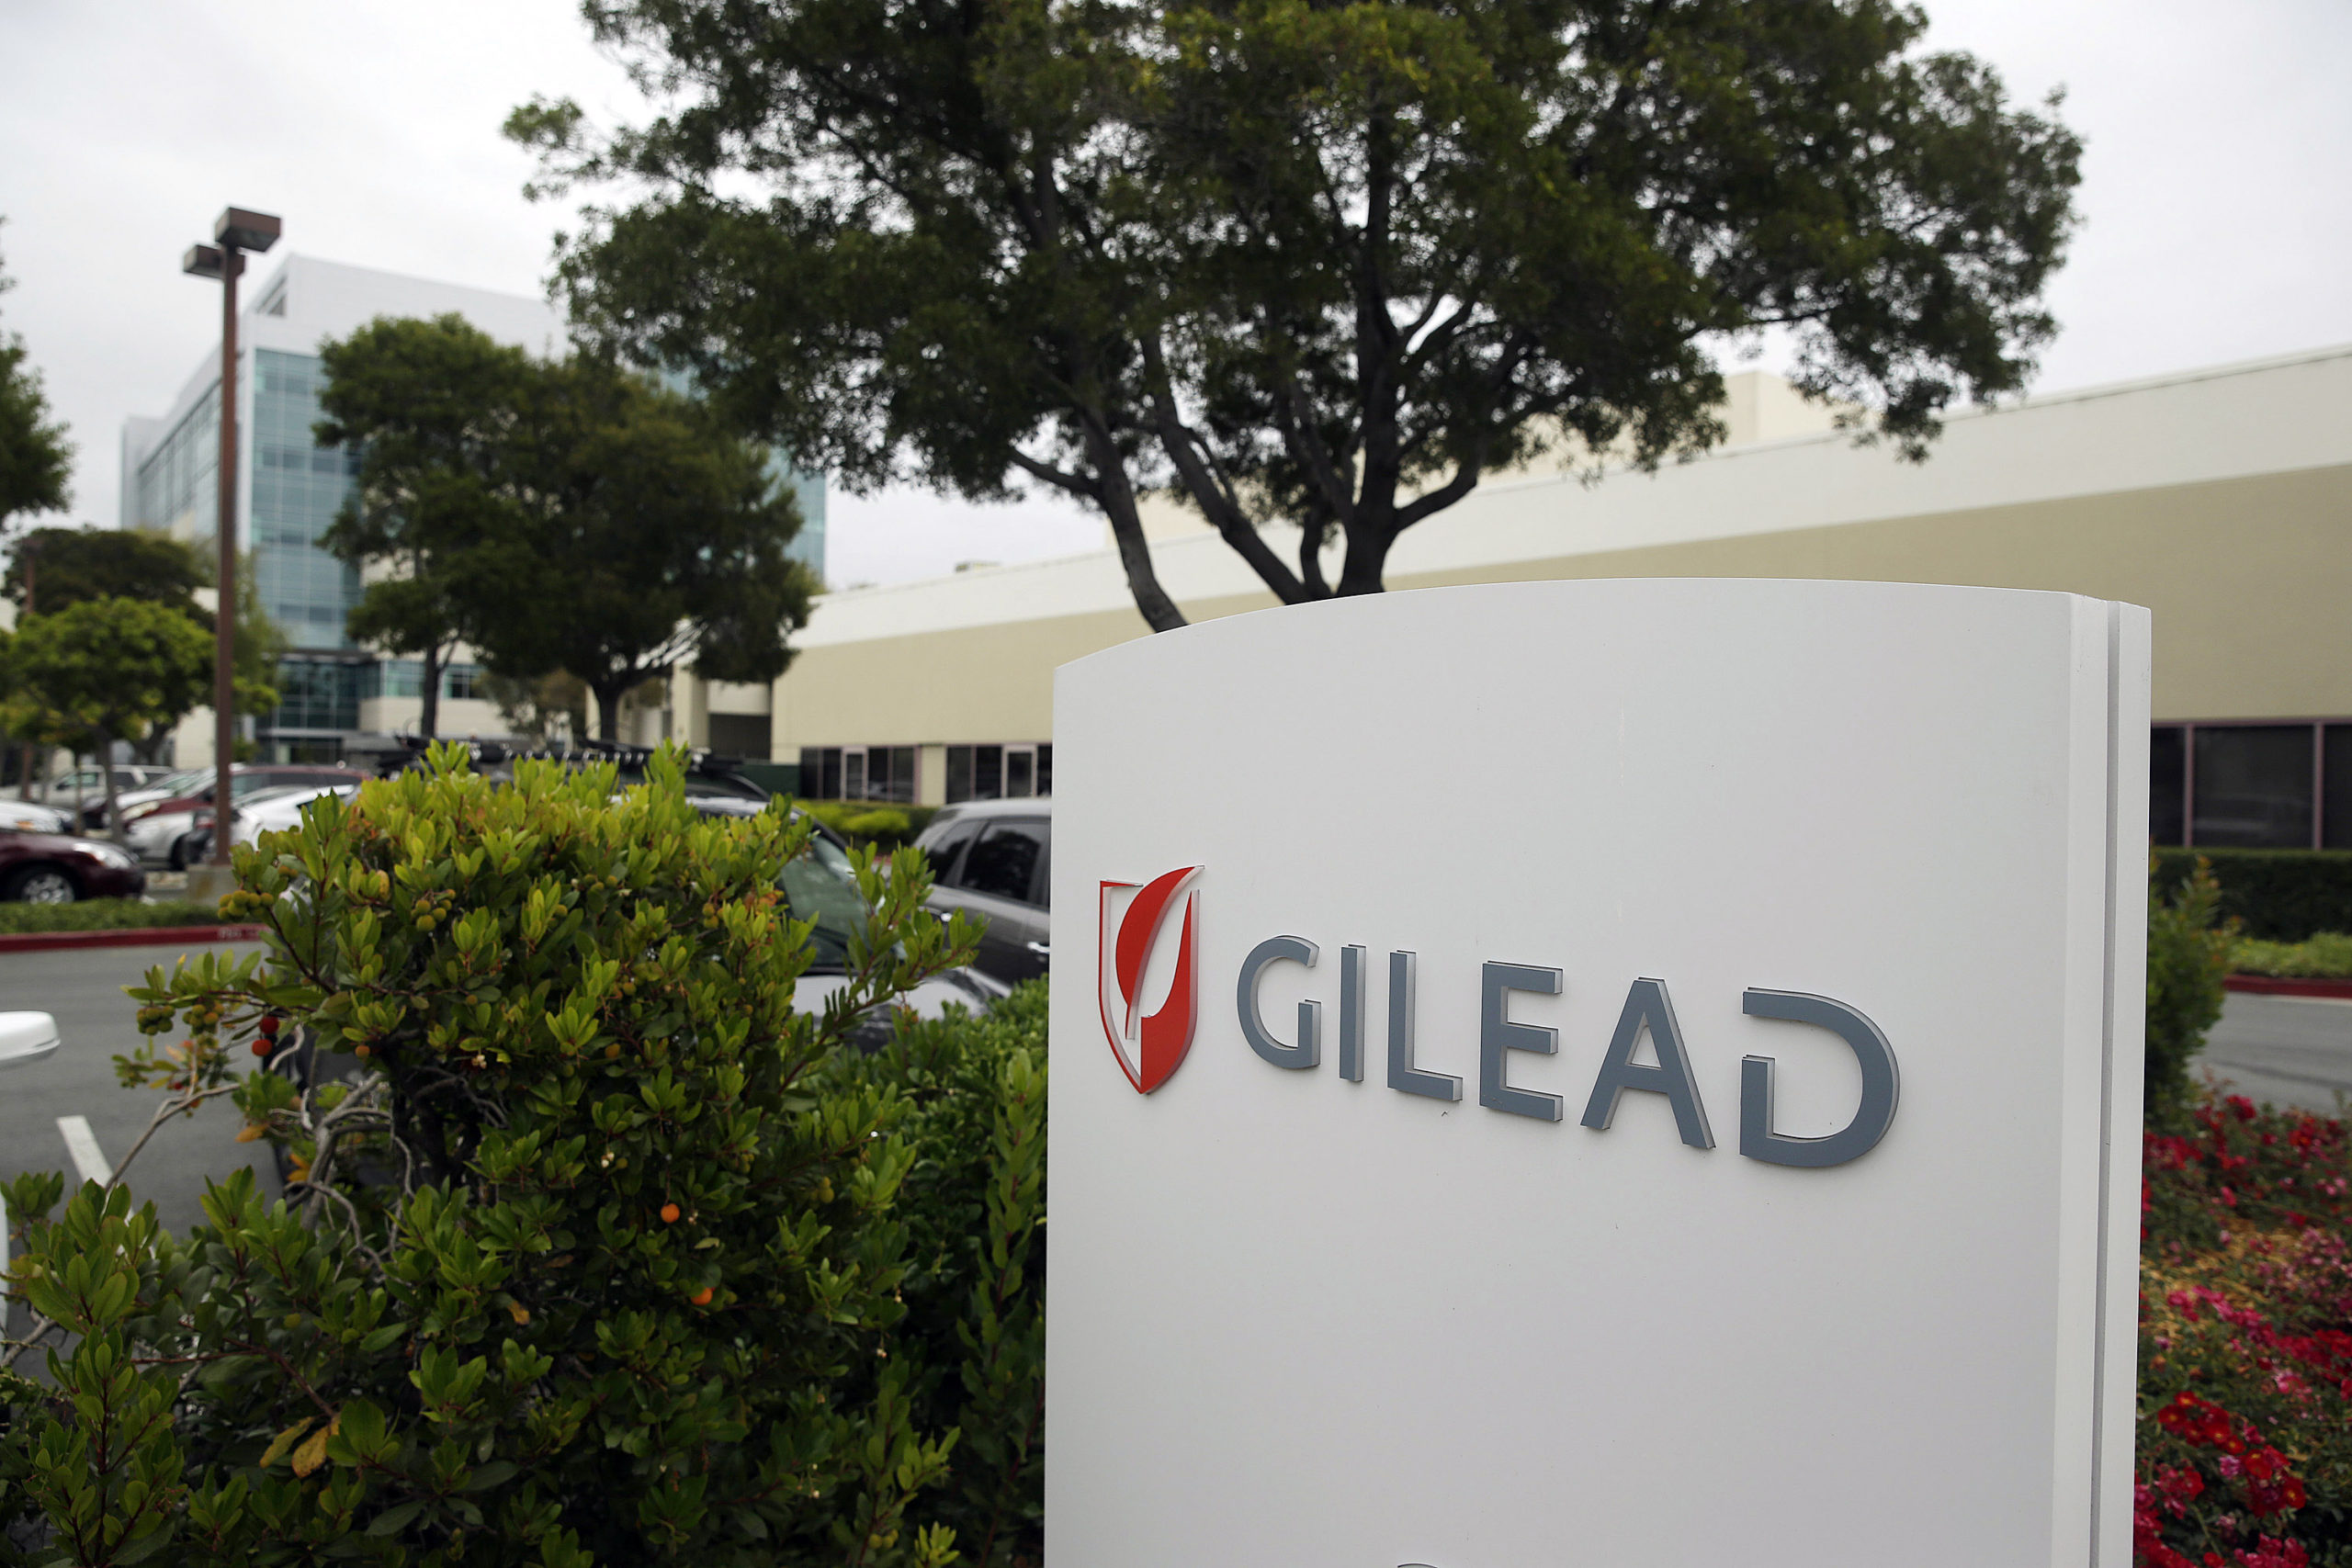 Know More About Gilead's Wonder-Drug Remdesivir